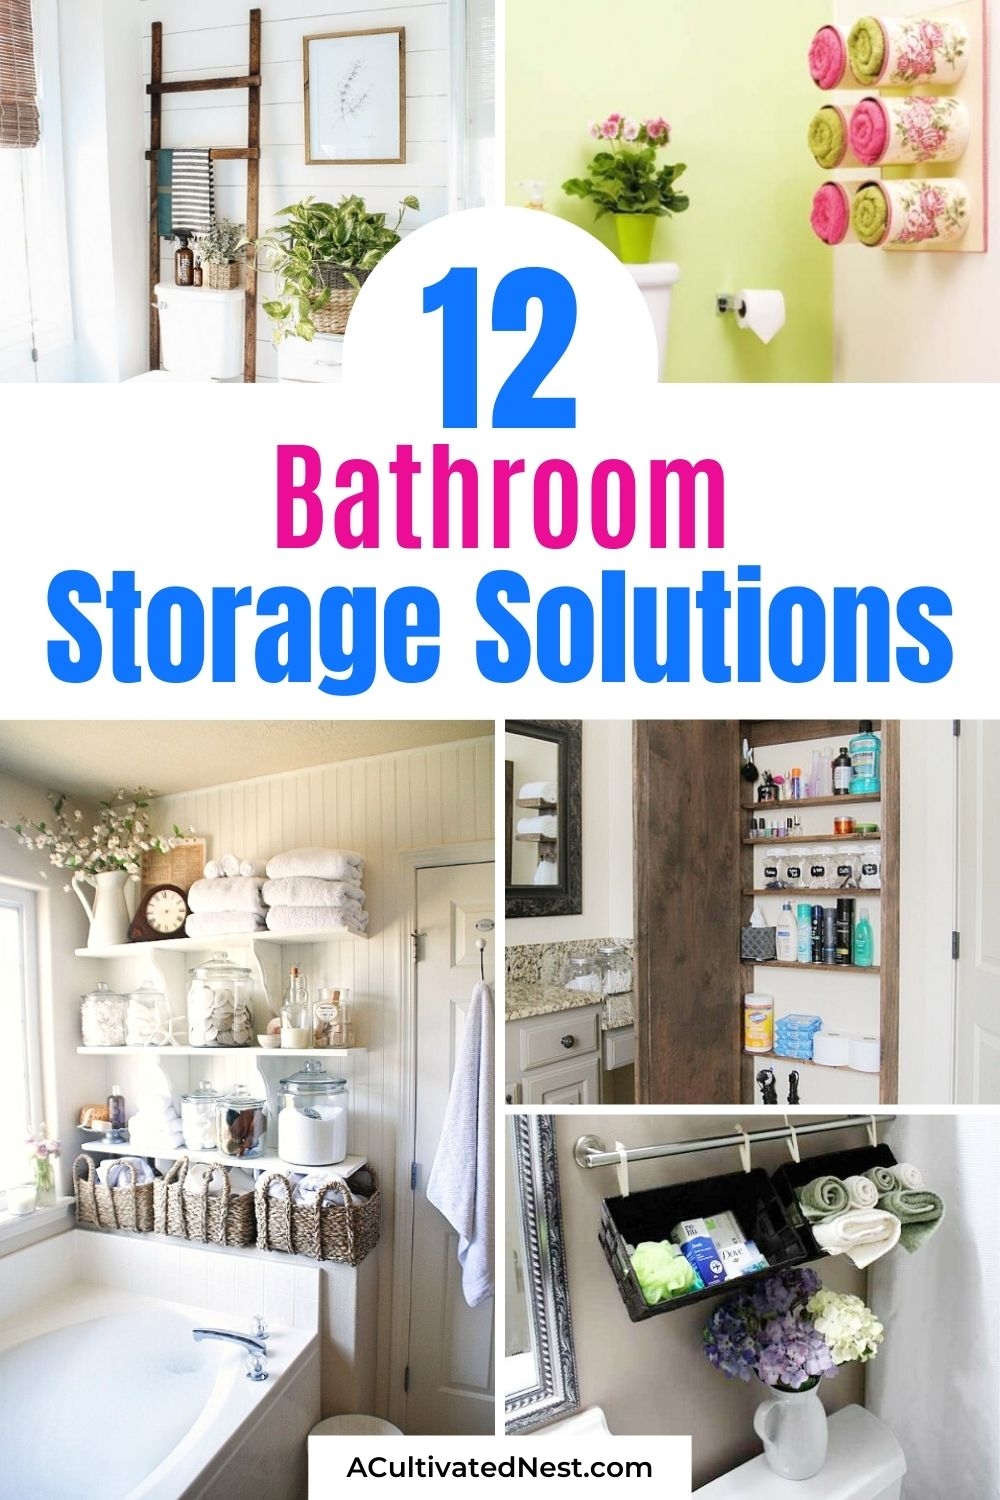 12 Bathroom Storage Solutions- If your home could use more storage in the bathroom, then you'll love these 12 creative bathroom storage solutions! They include many great DIY organizing ideas!   #organizing #homeOrganization #bathroomOrganizing #bathroomStorage #ACultivatedNest